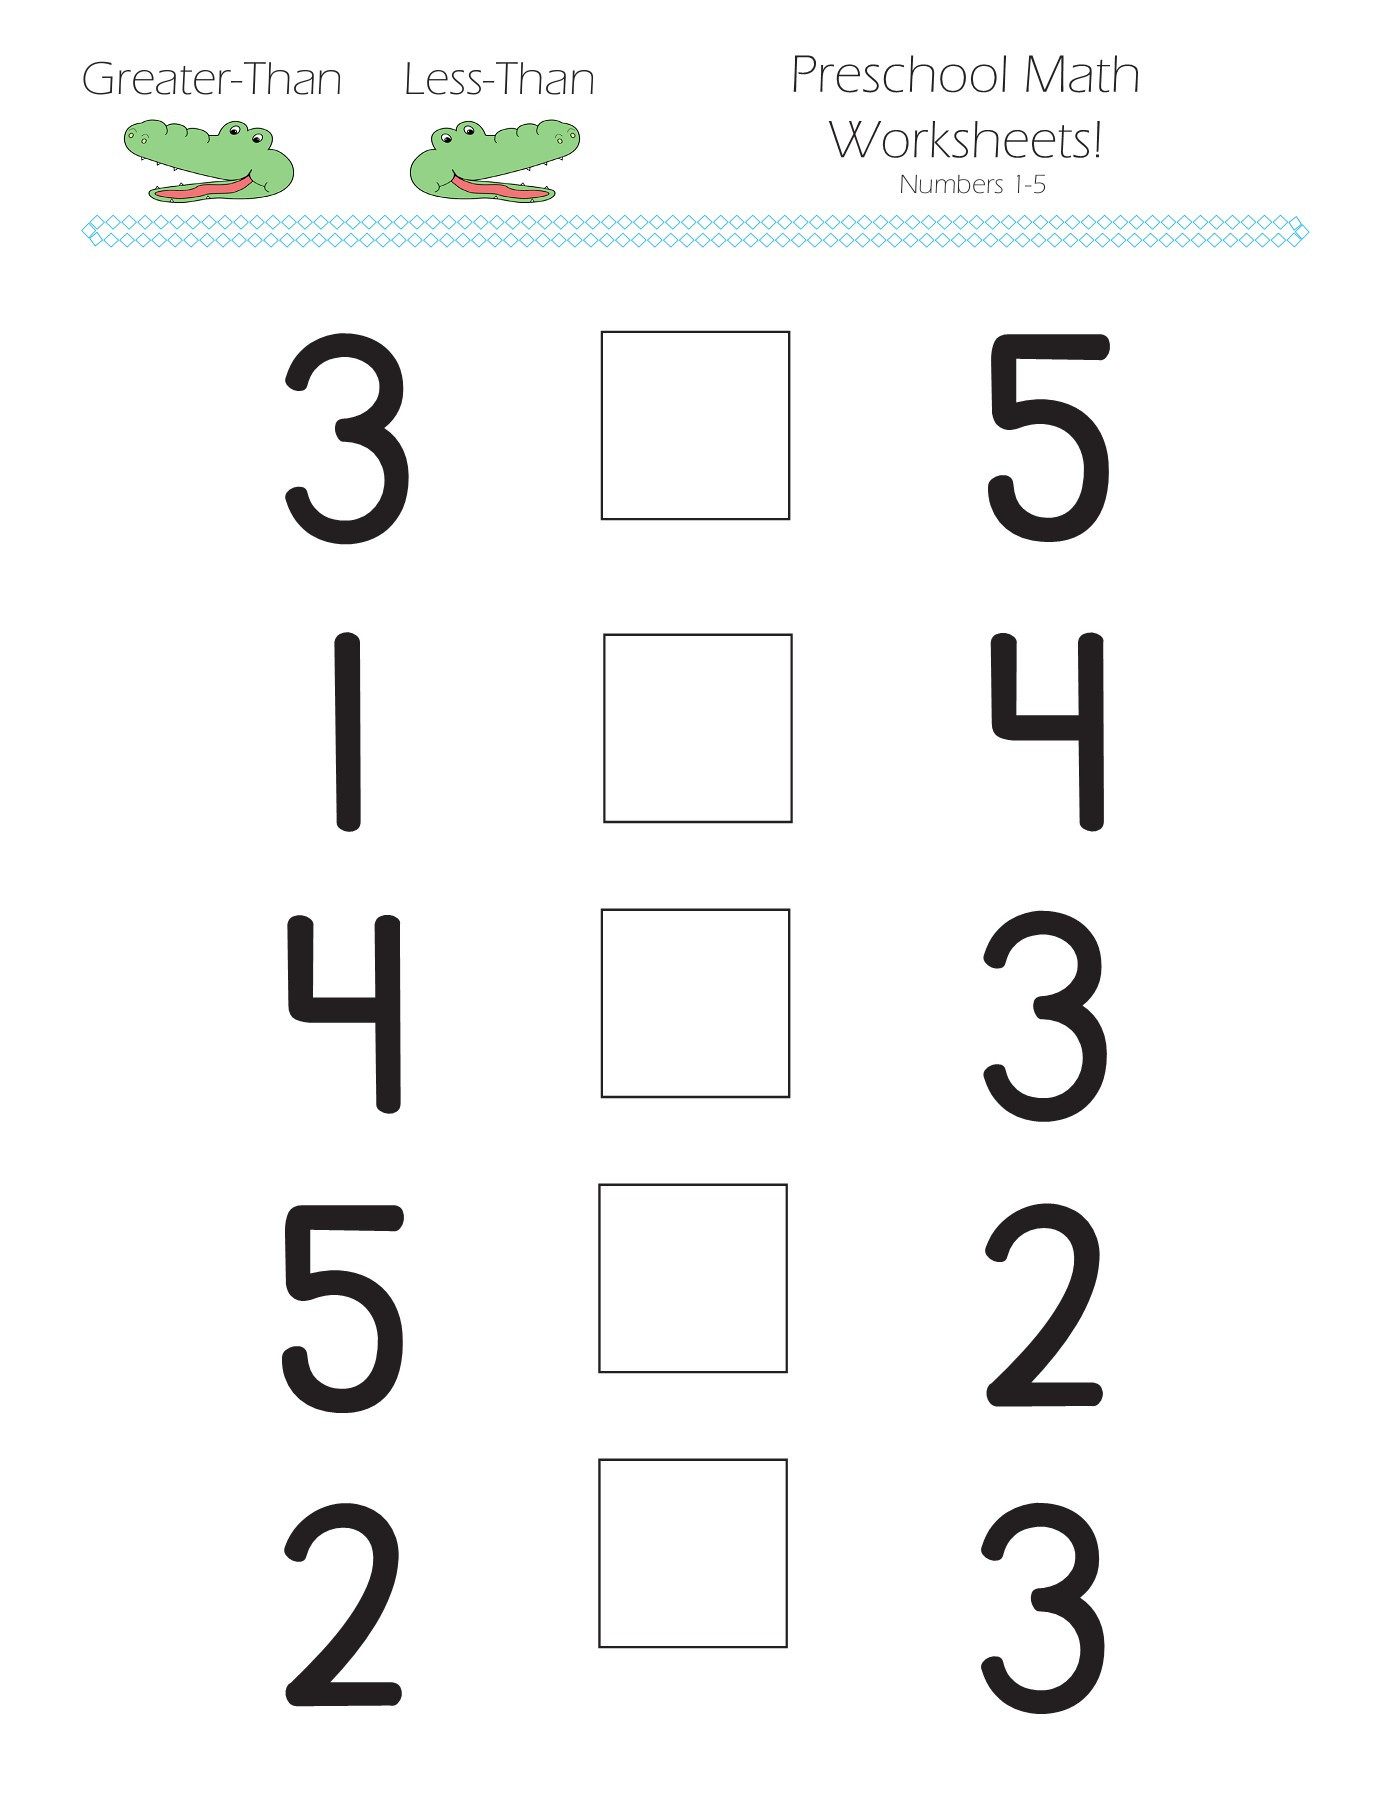 Traceable Number Worksheets 1 20 Template Library